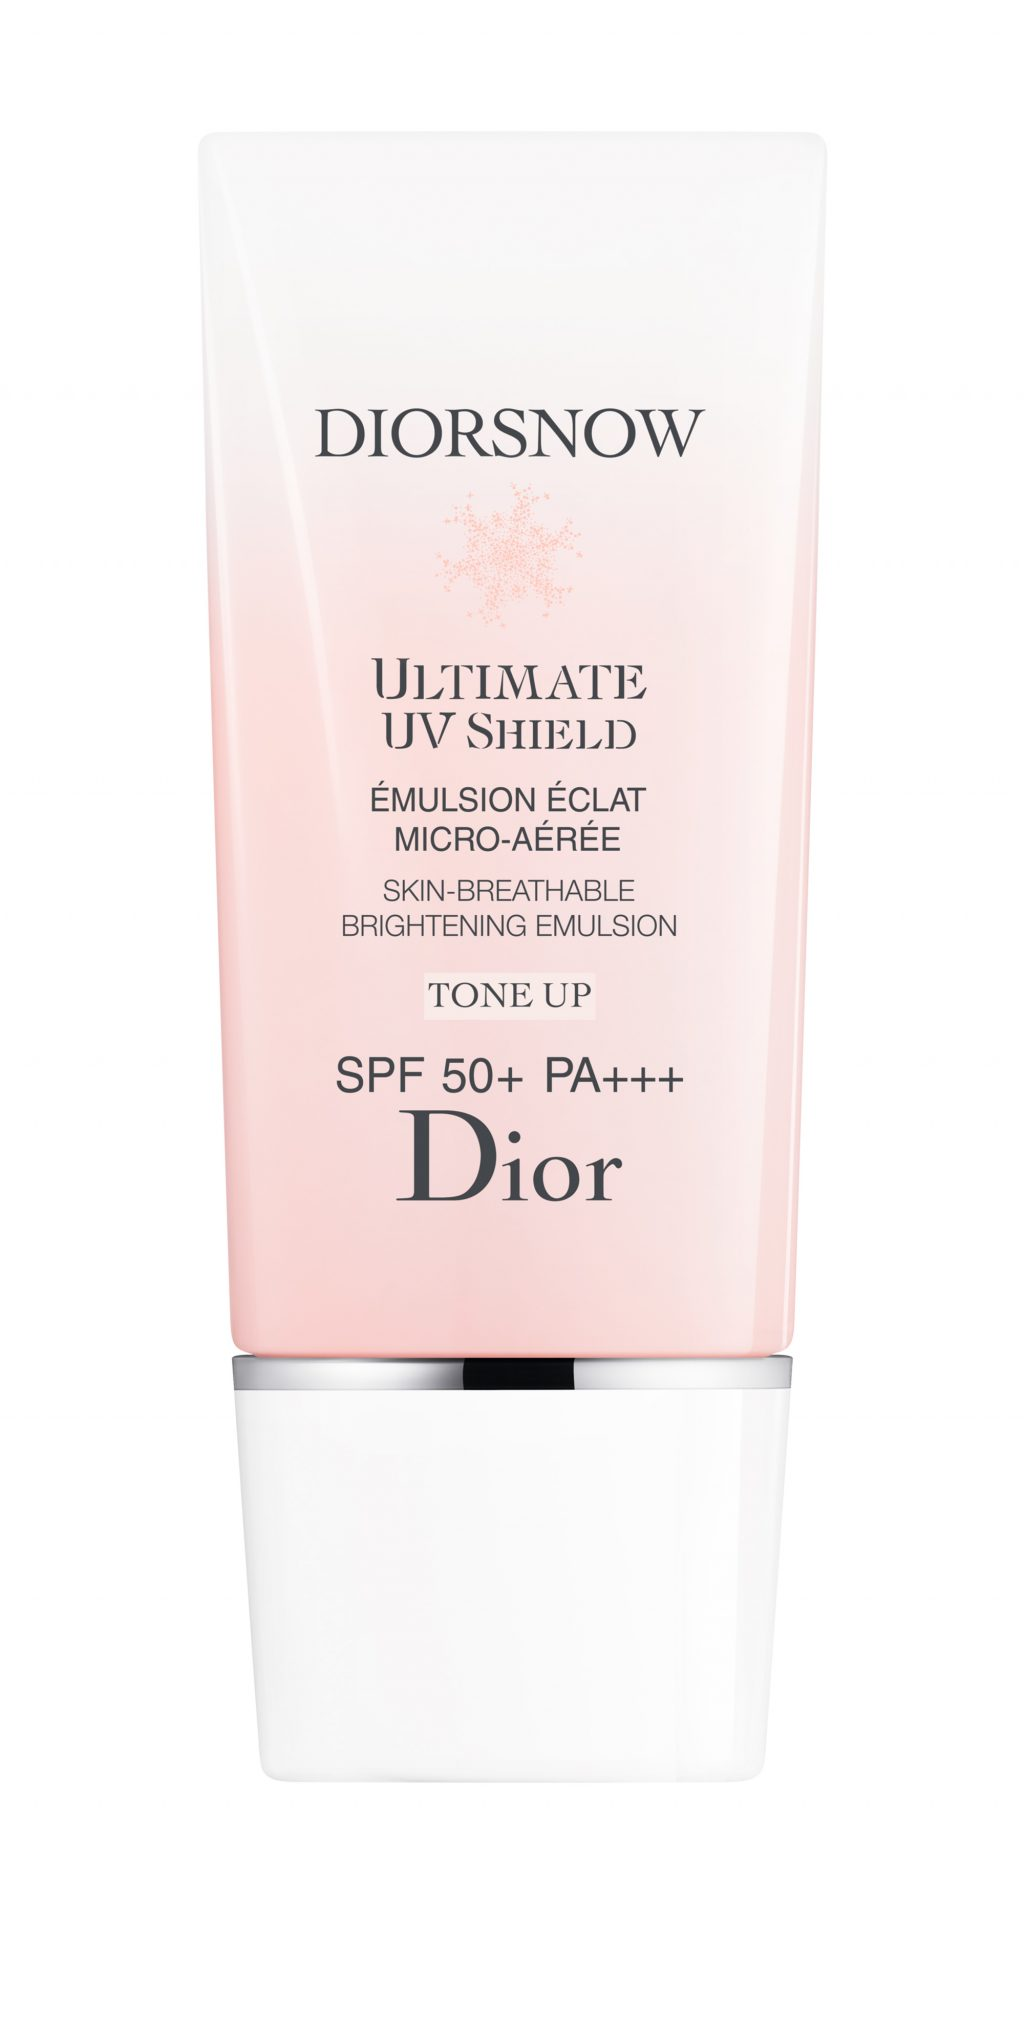 kem chống nắng Dior Snow Ultimate